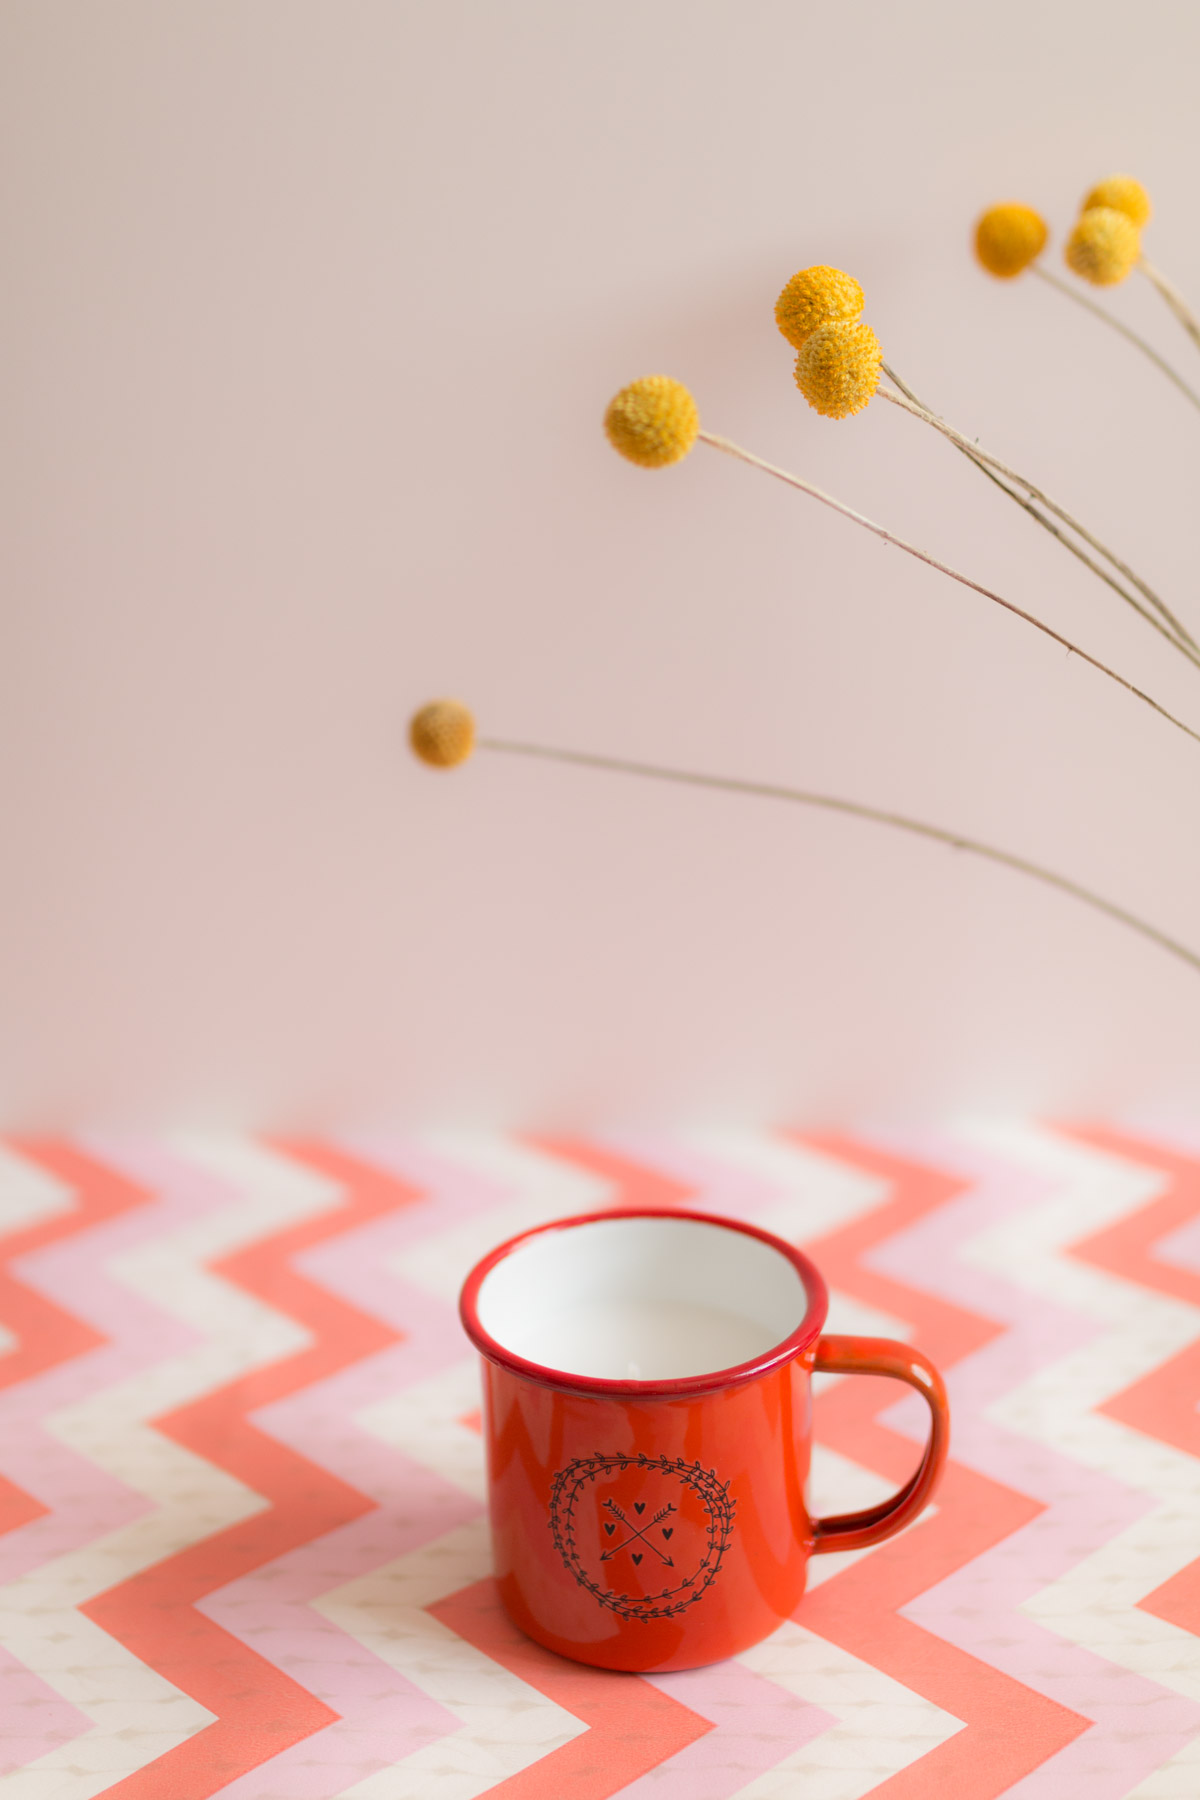 DIY Mug bougie I Sp4nkblog-14